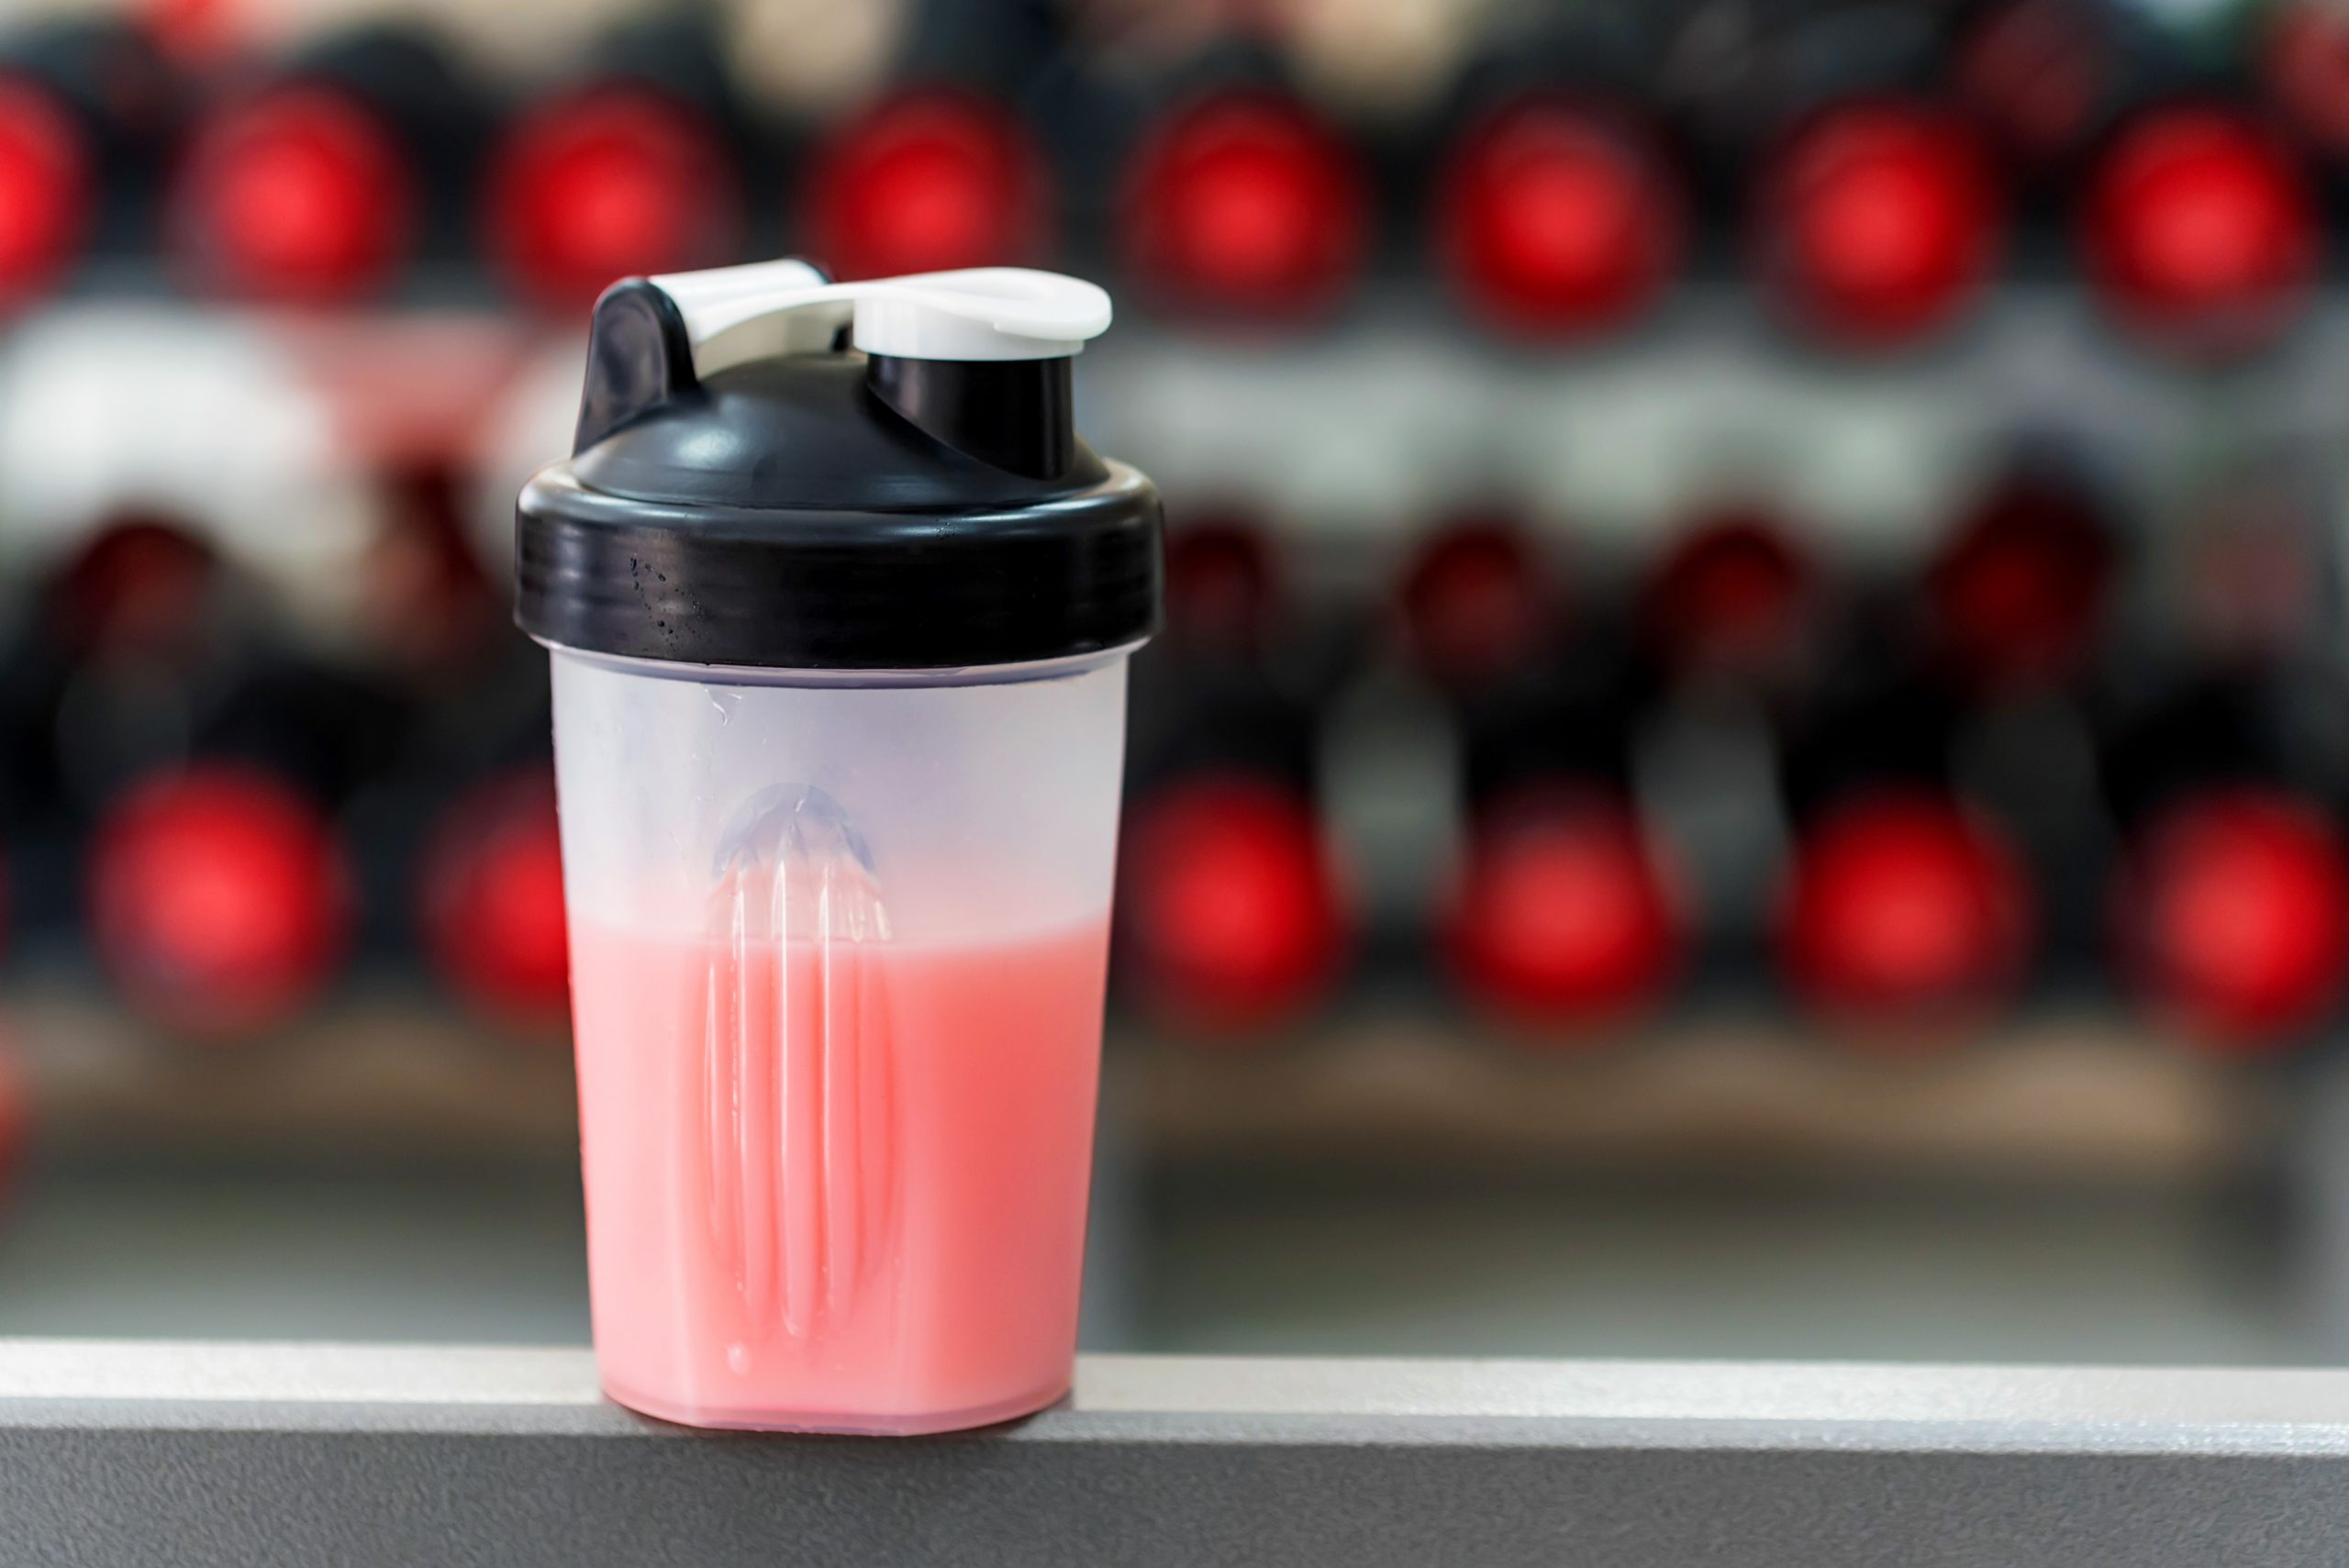 protein shakes, belly fat, diet supplements, food supplements